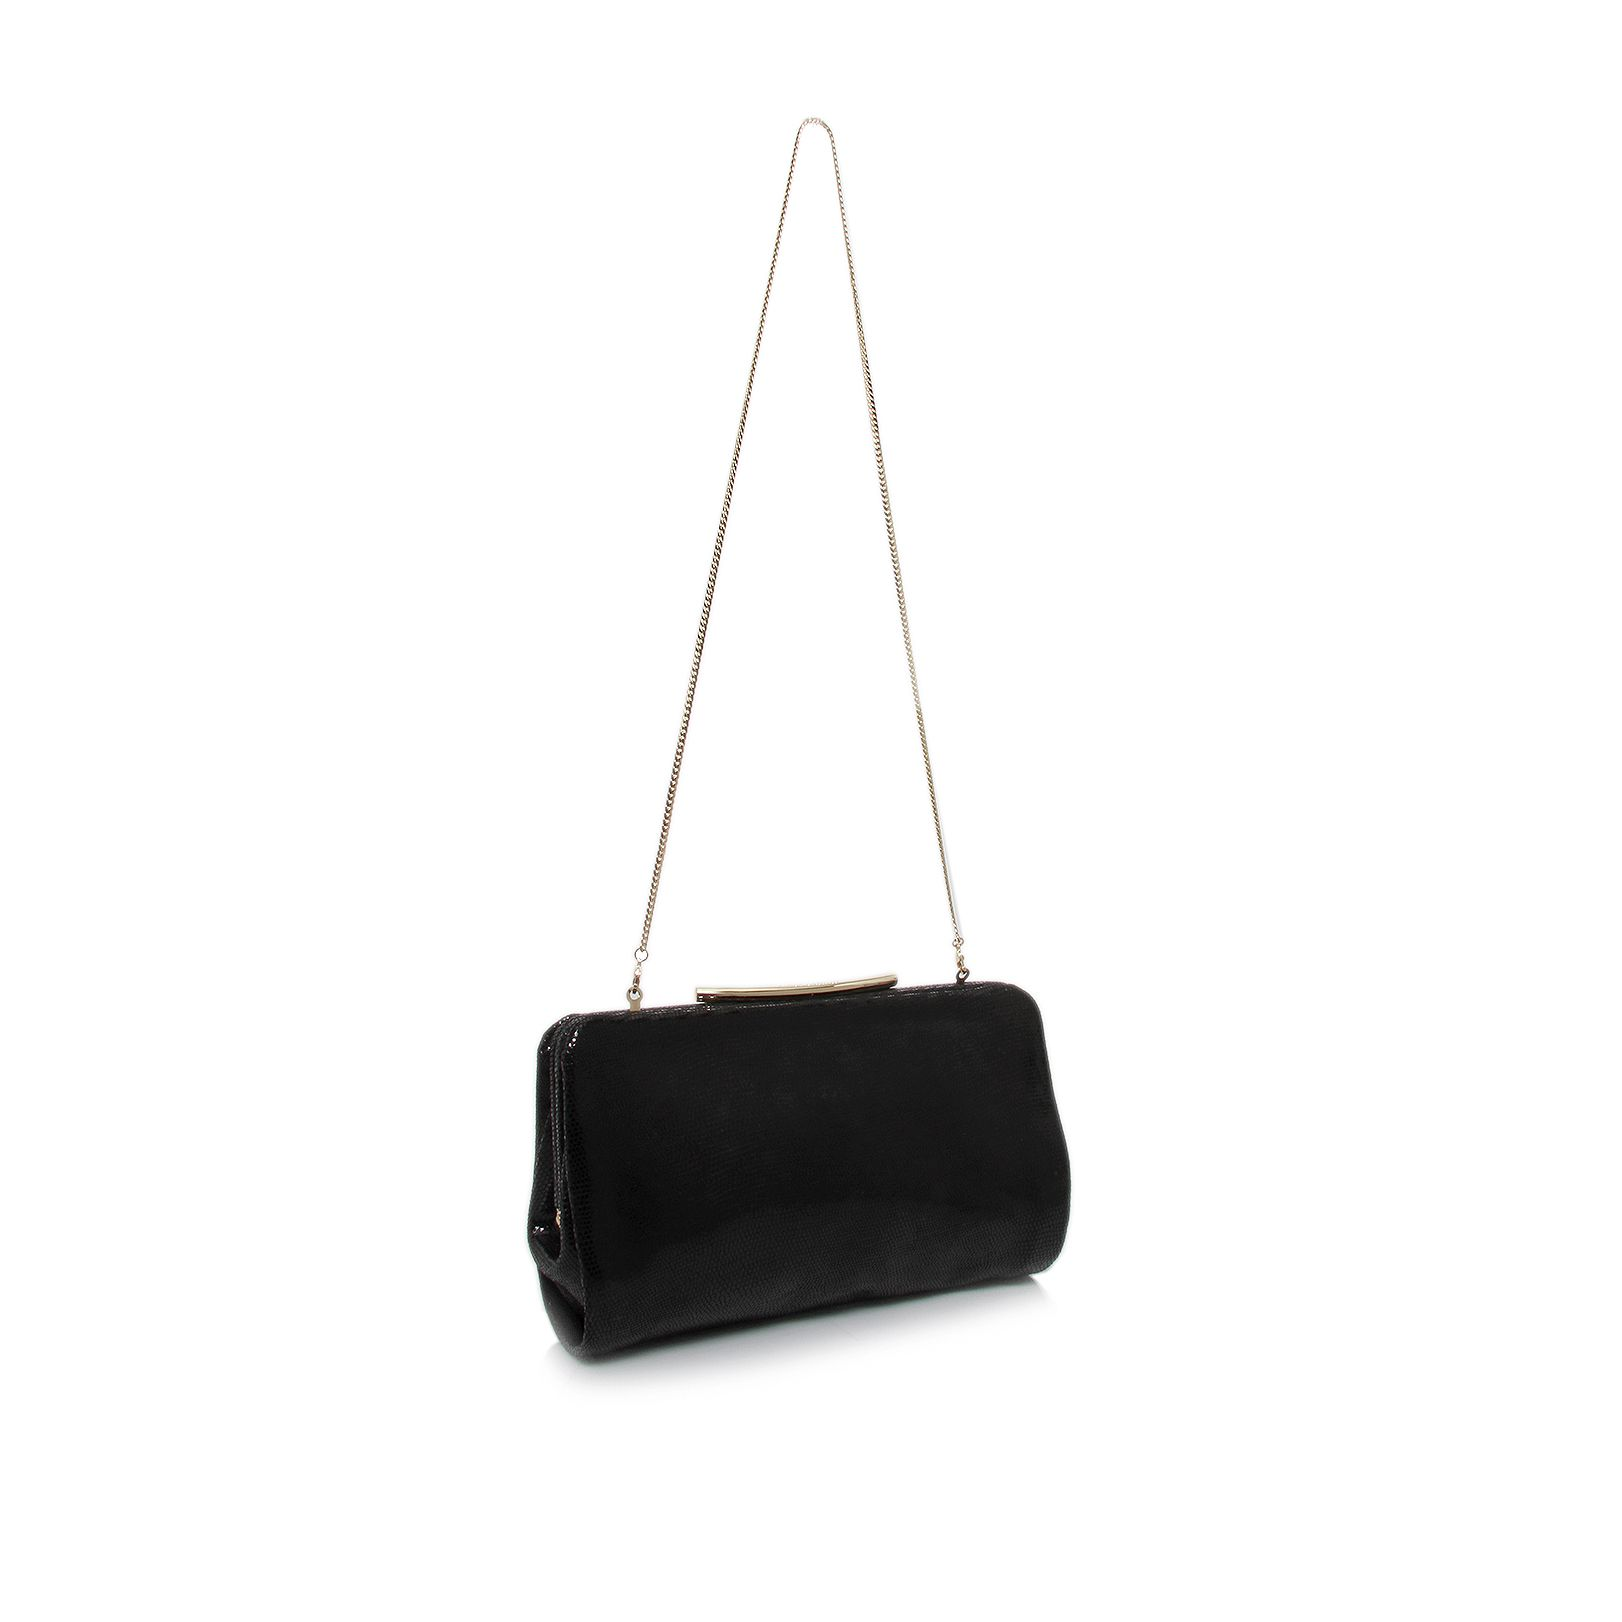 Ella clutch bag